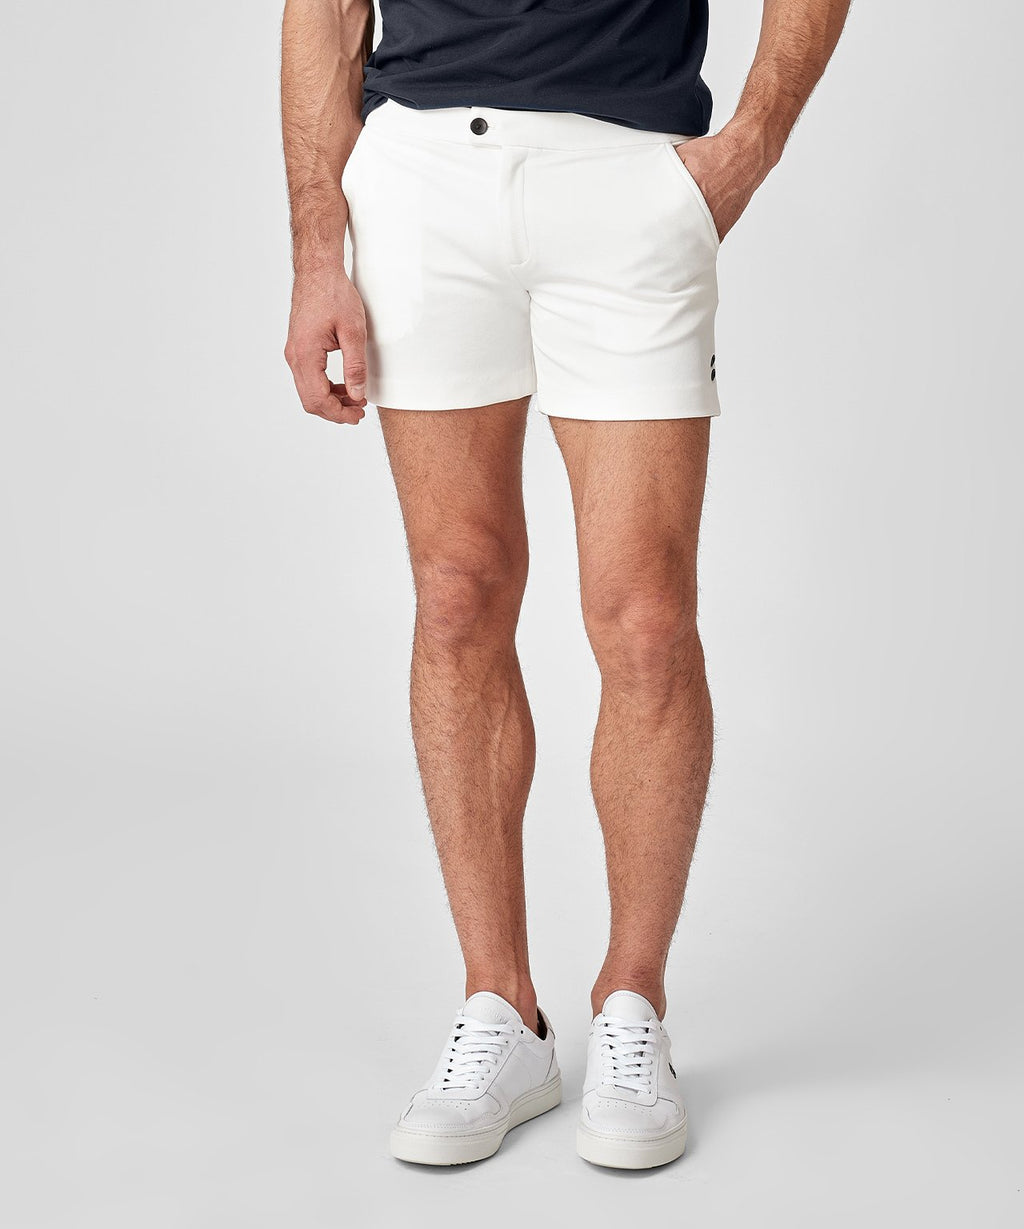 Ron-Dorff-Tennis-Short